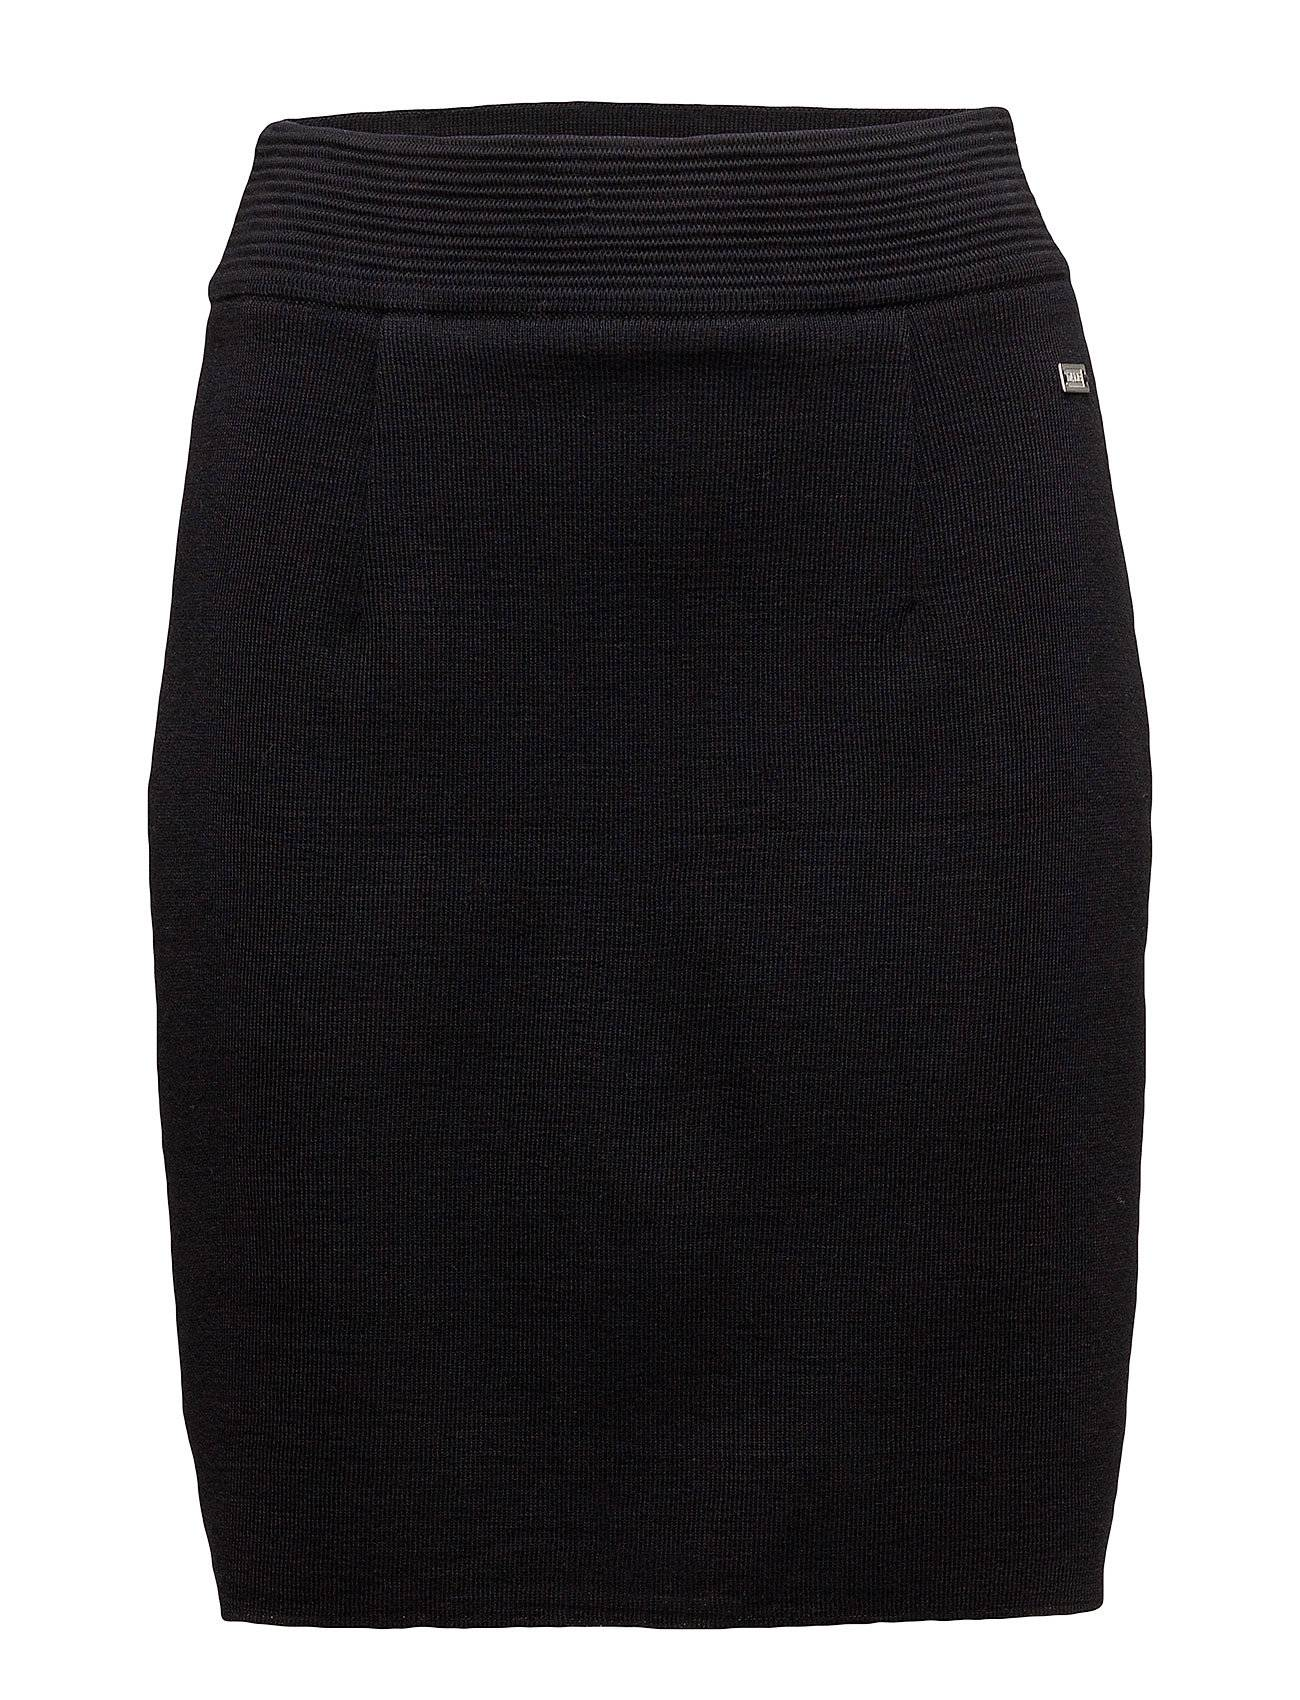 Dale of Norway Dale Skirt